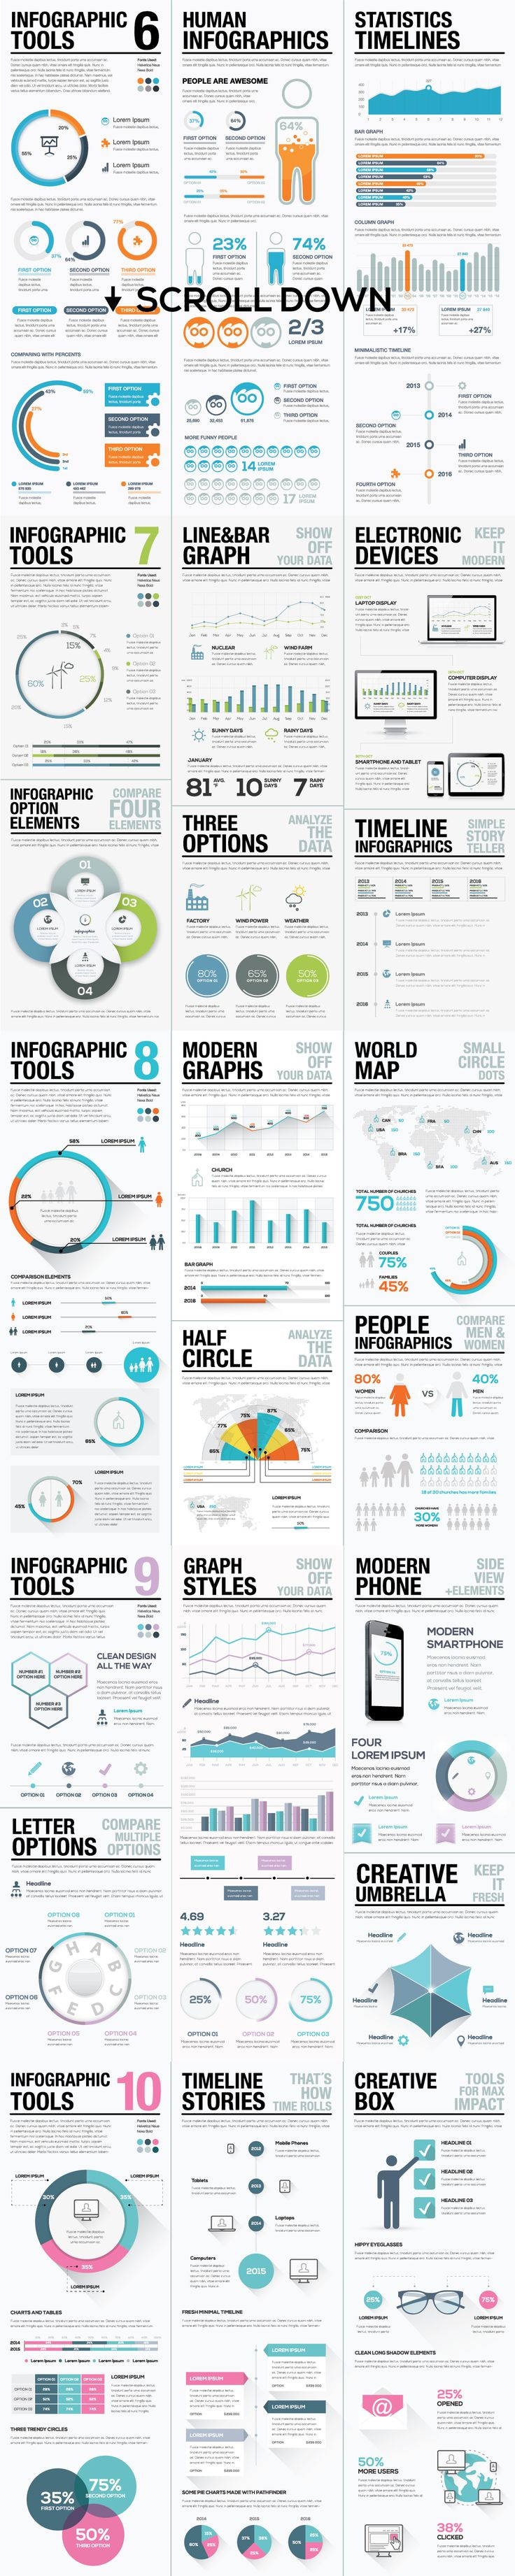 45%OFF Infographic Elements Bundle 2 by Infographic Template Shop on Creative Market